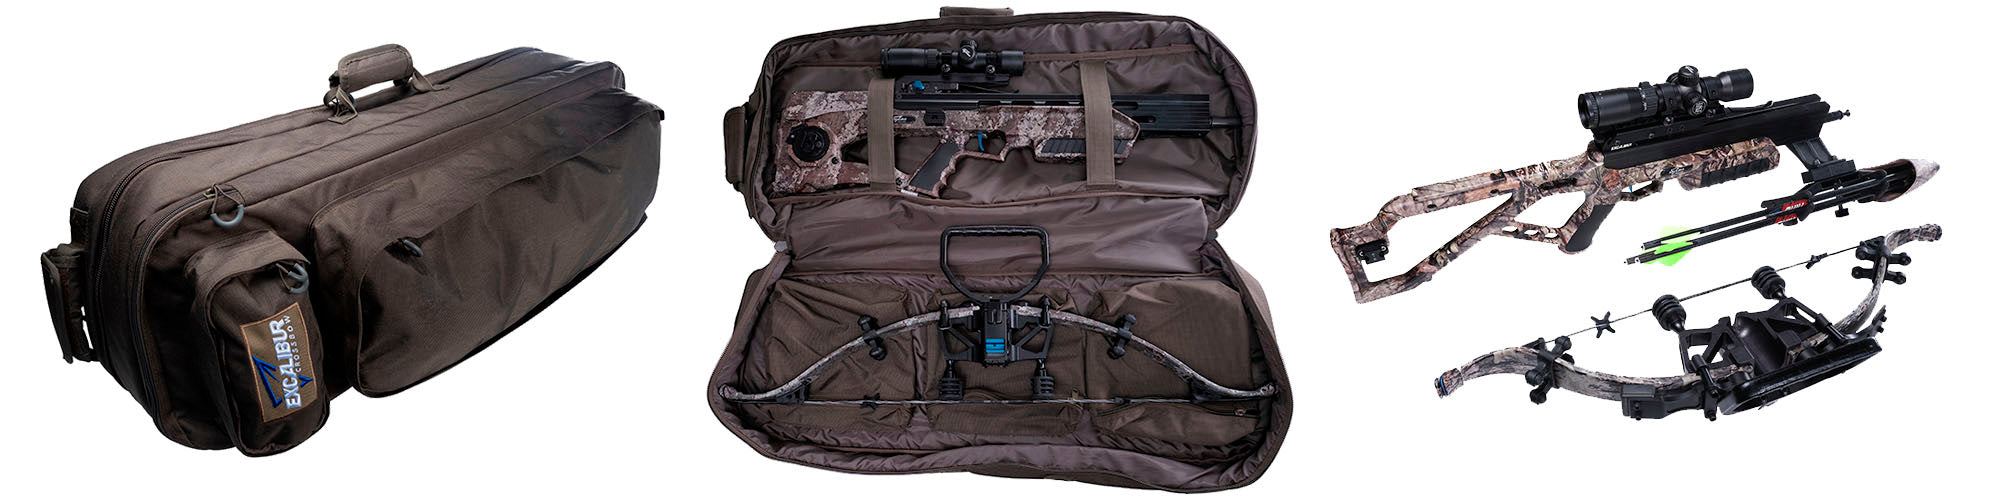 Excalibur crossbow case closed on the left in olive green, the case open with the assassin 420 td crossbow securely stored in the middle and the assassin 420 TD deconstructed on the right